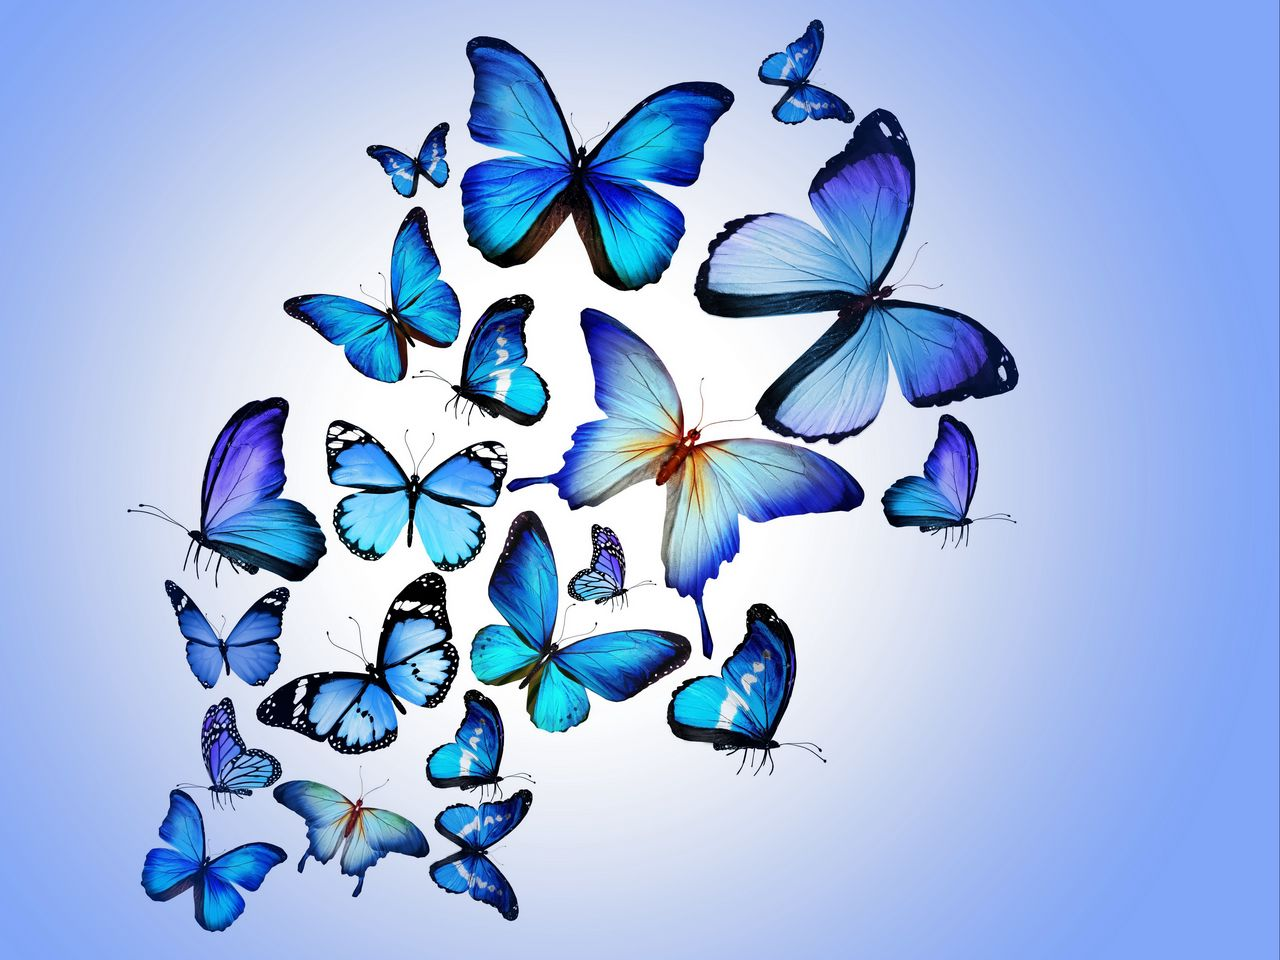 1280x960 Wallpaper butterfly, colorful, blue, drawing, art, beautiful